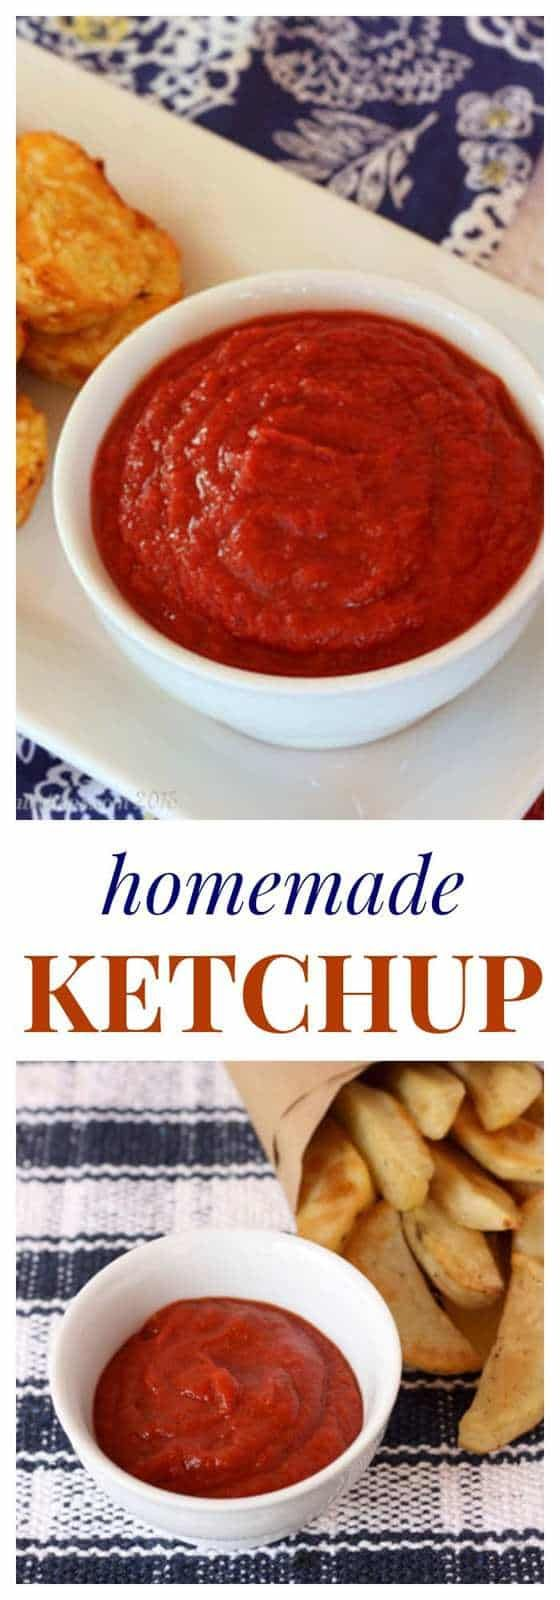 Homemade Ketchup - my kids will eat anything dipped in this. And since there is no sugar added, it totally counts as a veggie! | cupcakesandkalechips.com | gluten free, vegan, low carb